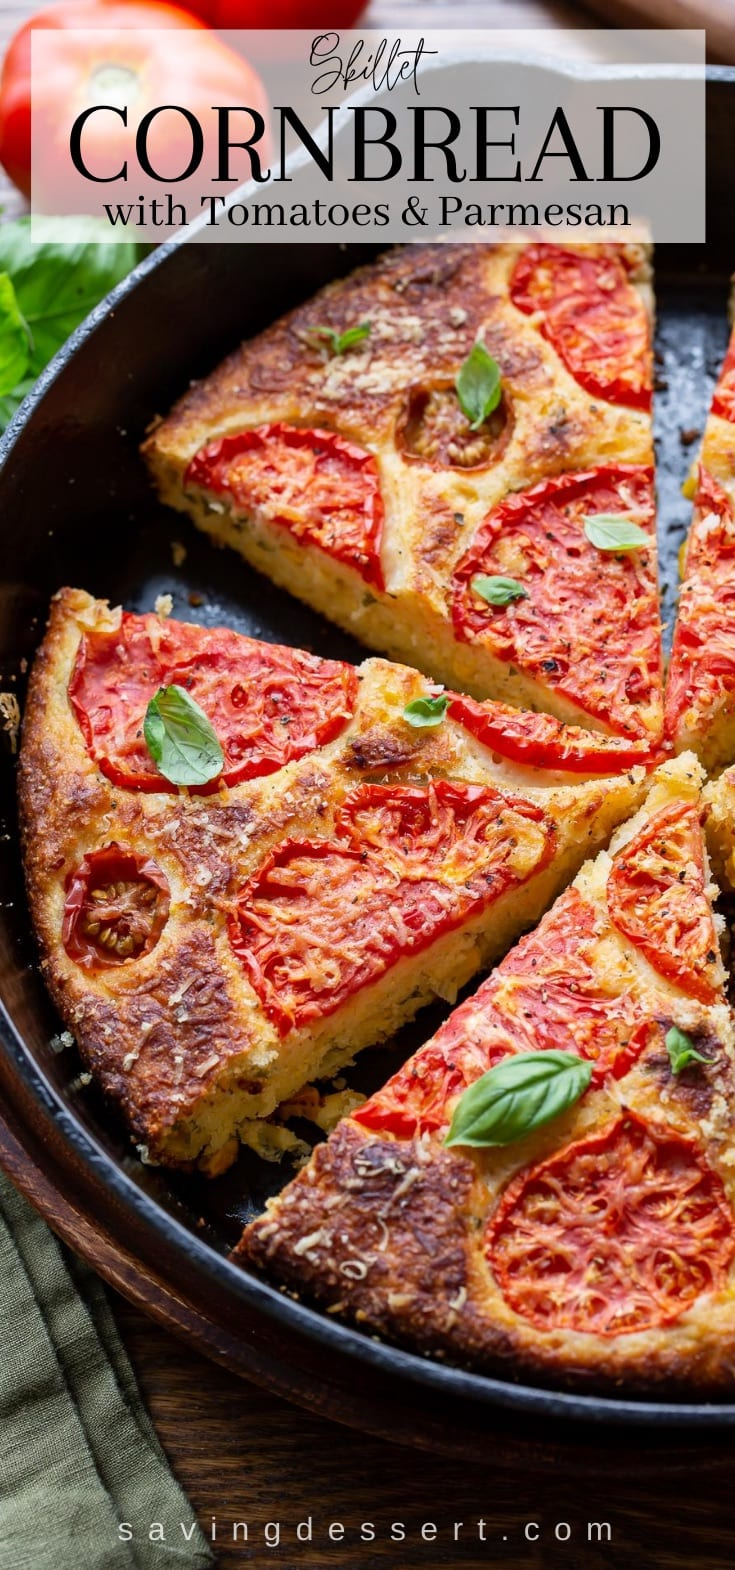 A cast iron skillet with cornbread topped with tomatoes and basil